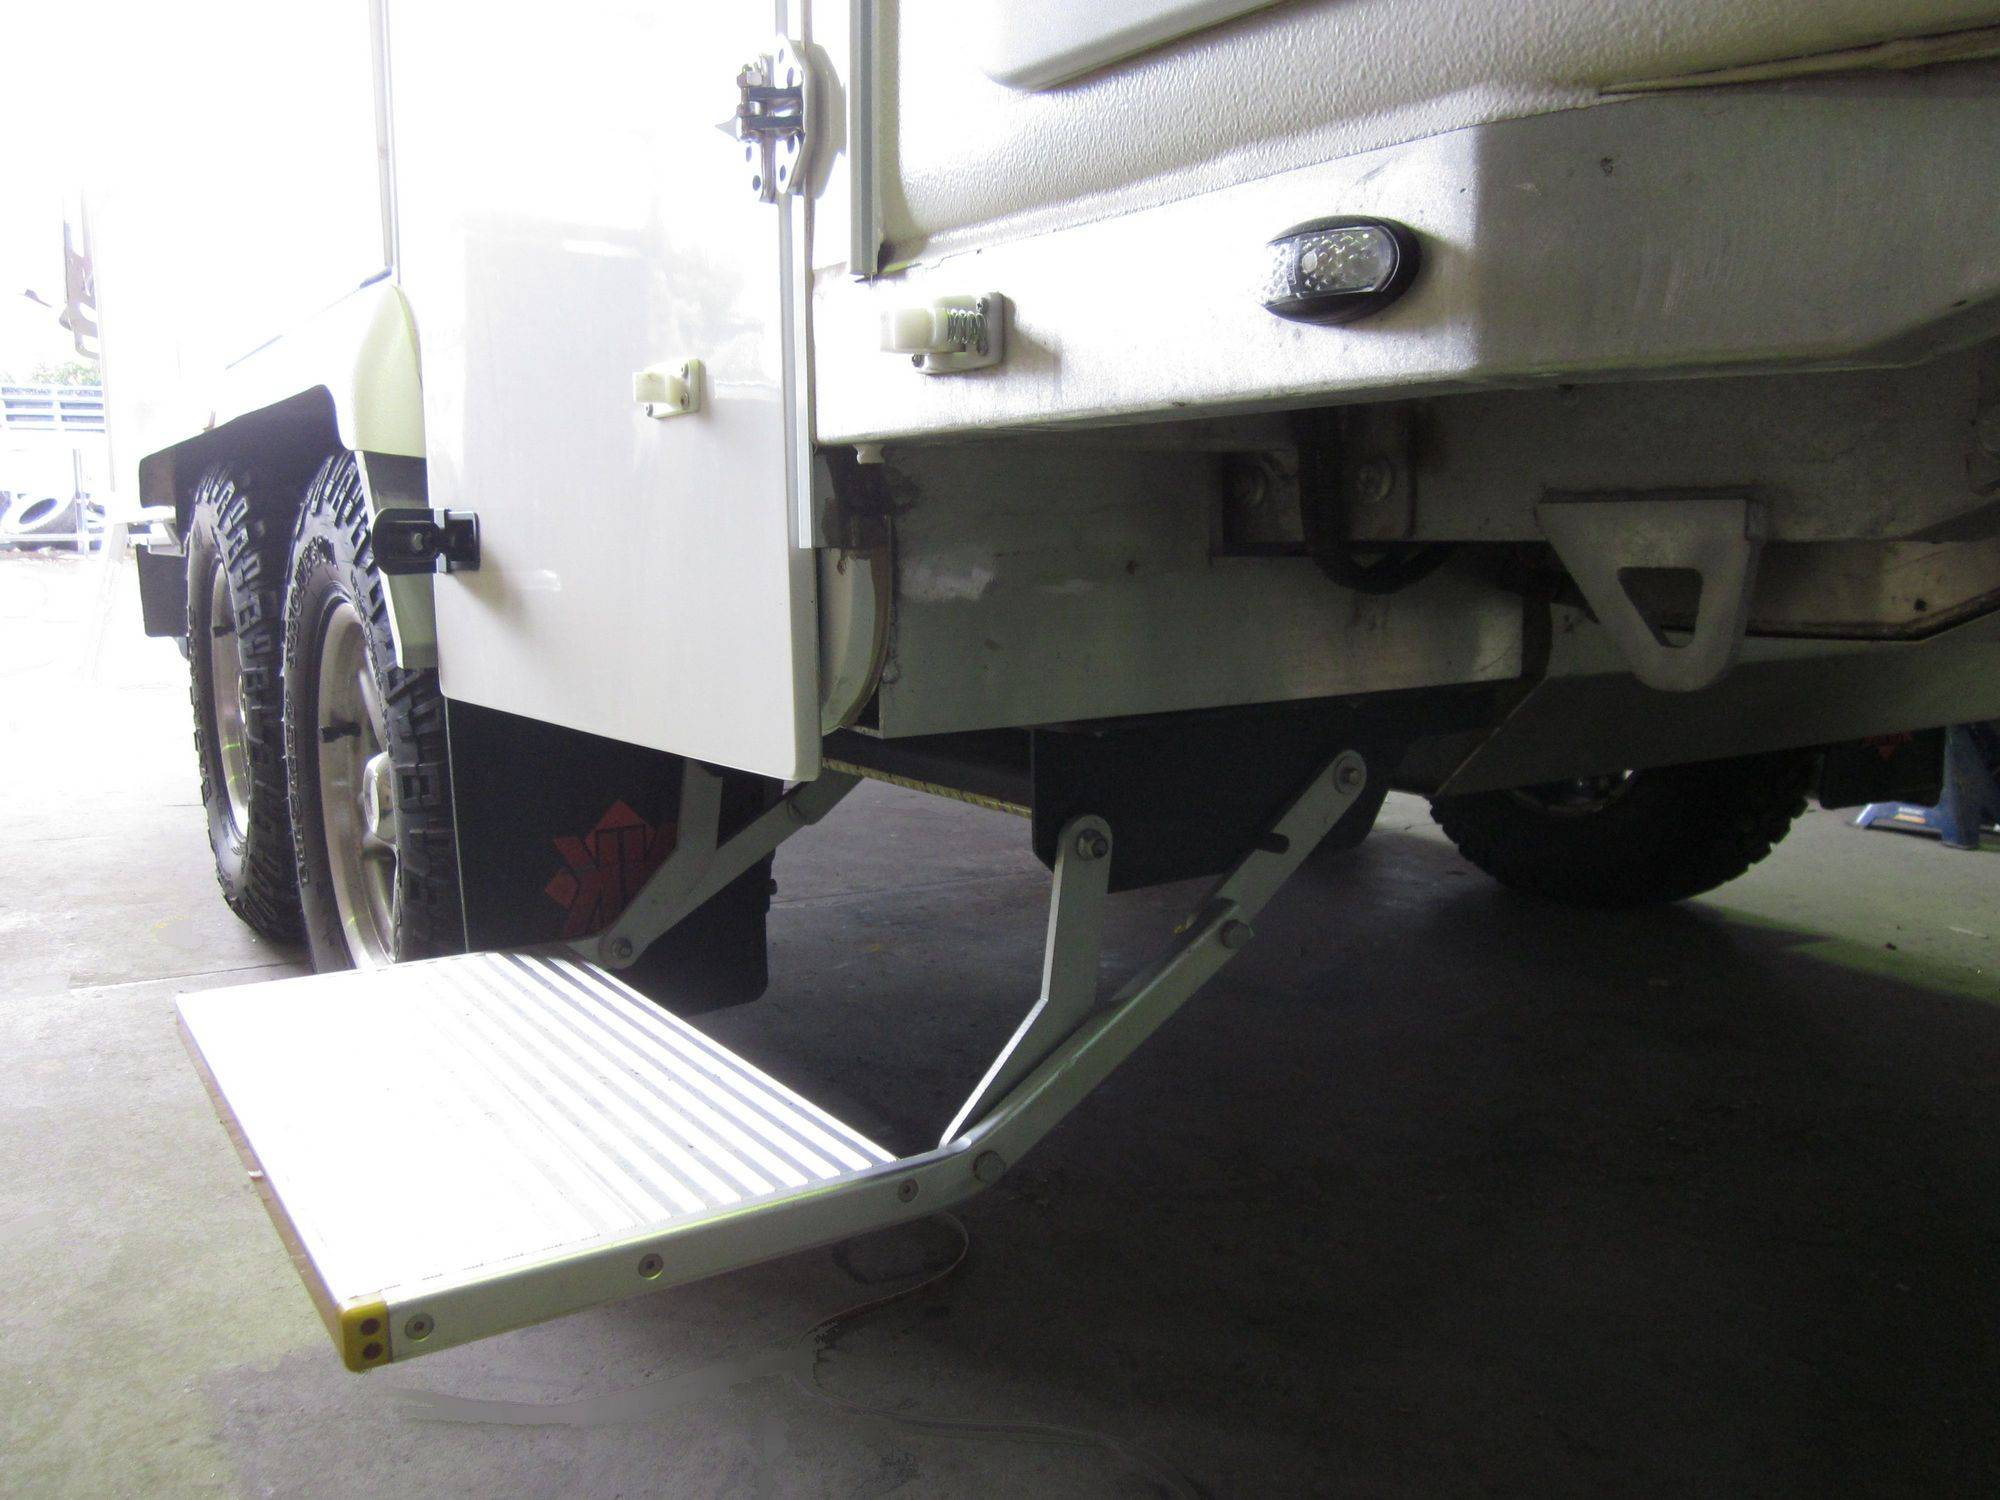 ES-F-S electric folding step for truck and camper